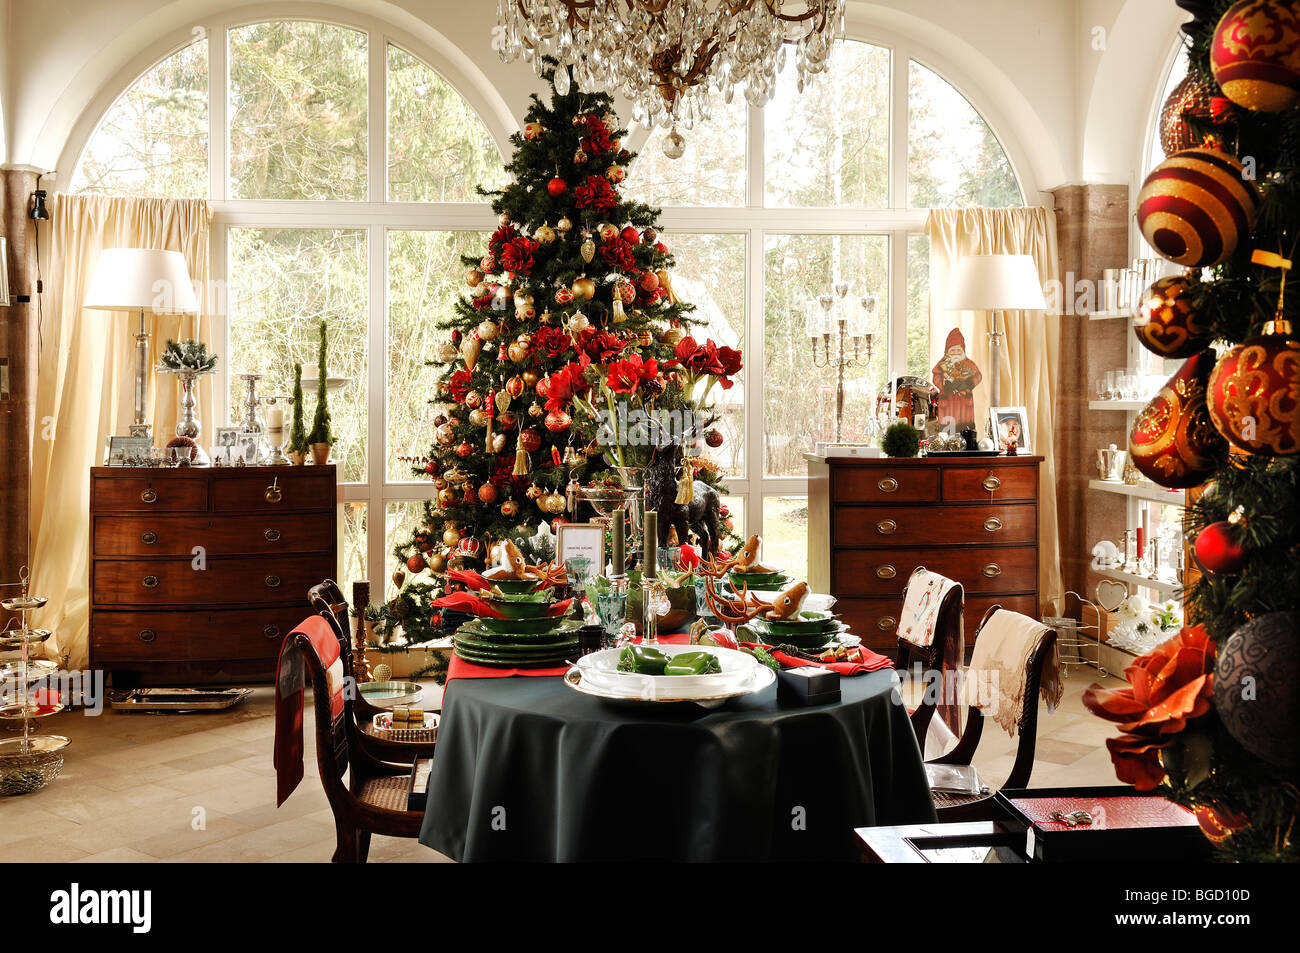 decorated christmas tree in a conservatory with a decorative table setting for sale villa ambiente store im weller nurembe